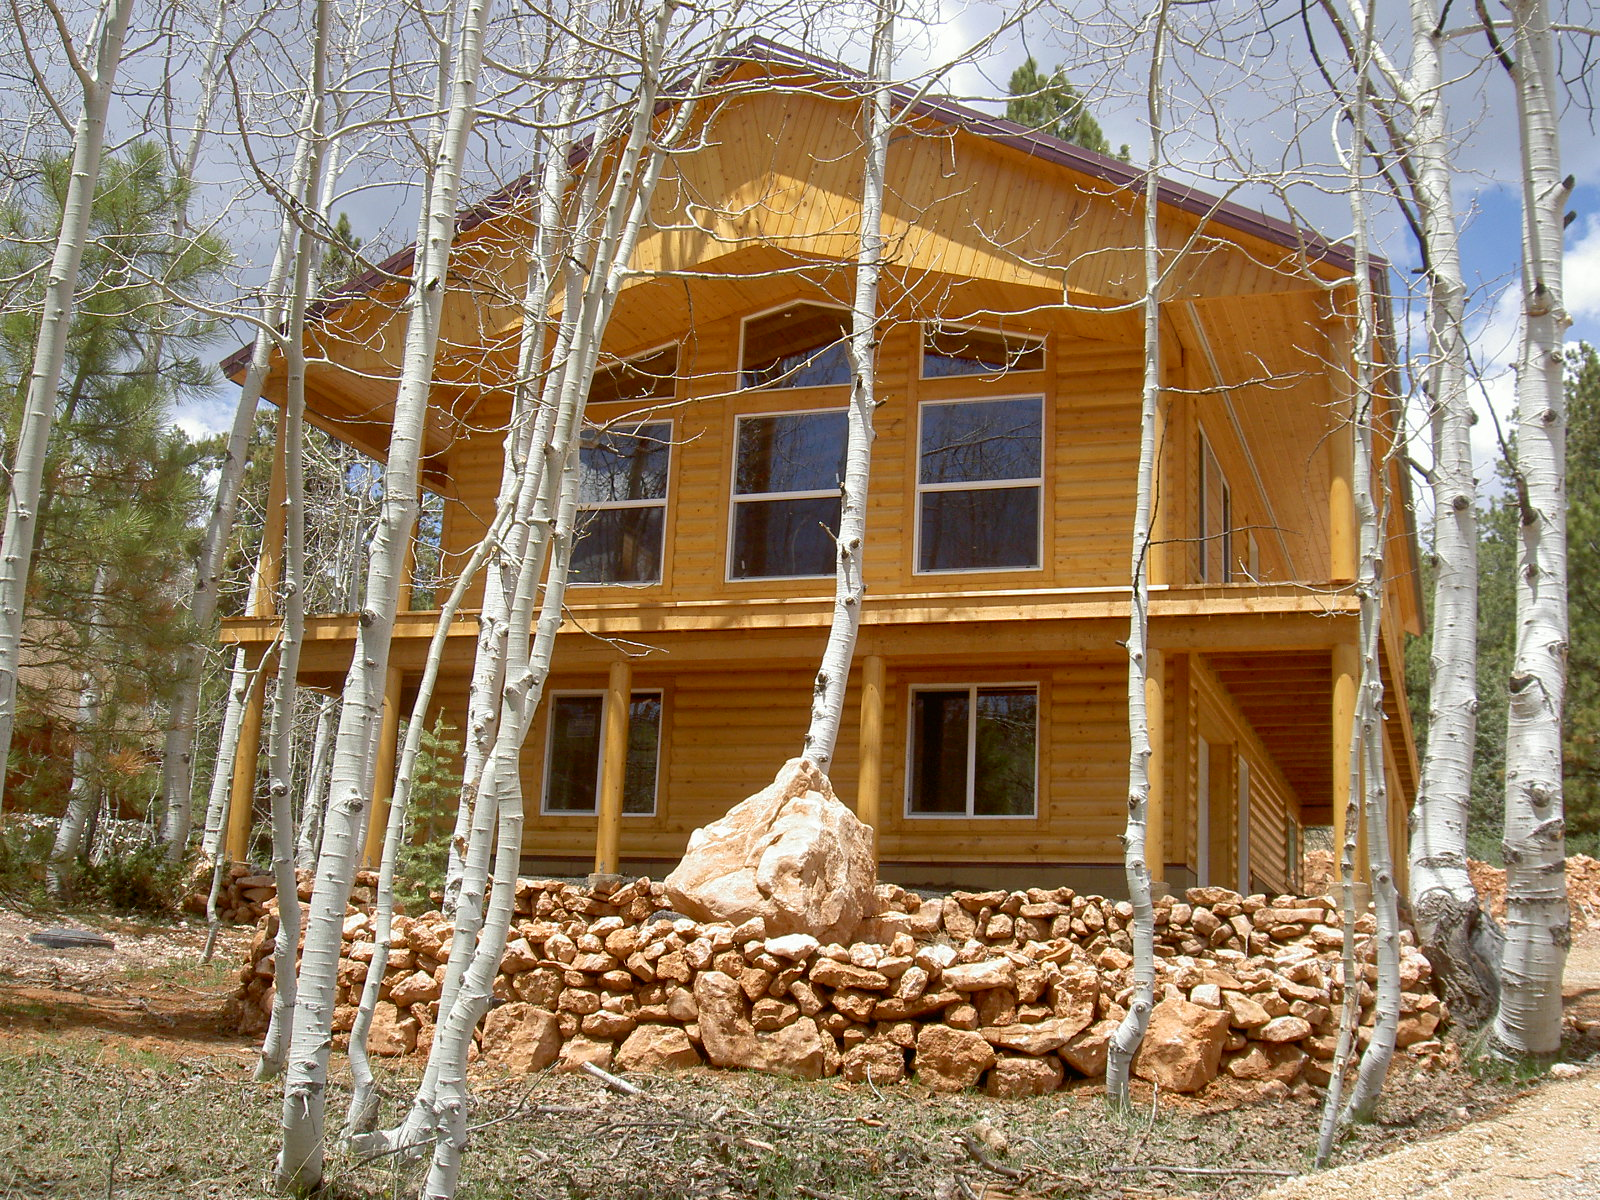 sale for estates estate view htm real cabin eddycabin duck cabins zion mountain utah in creek